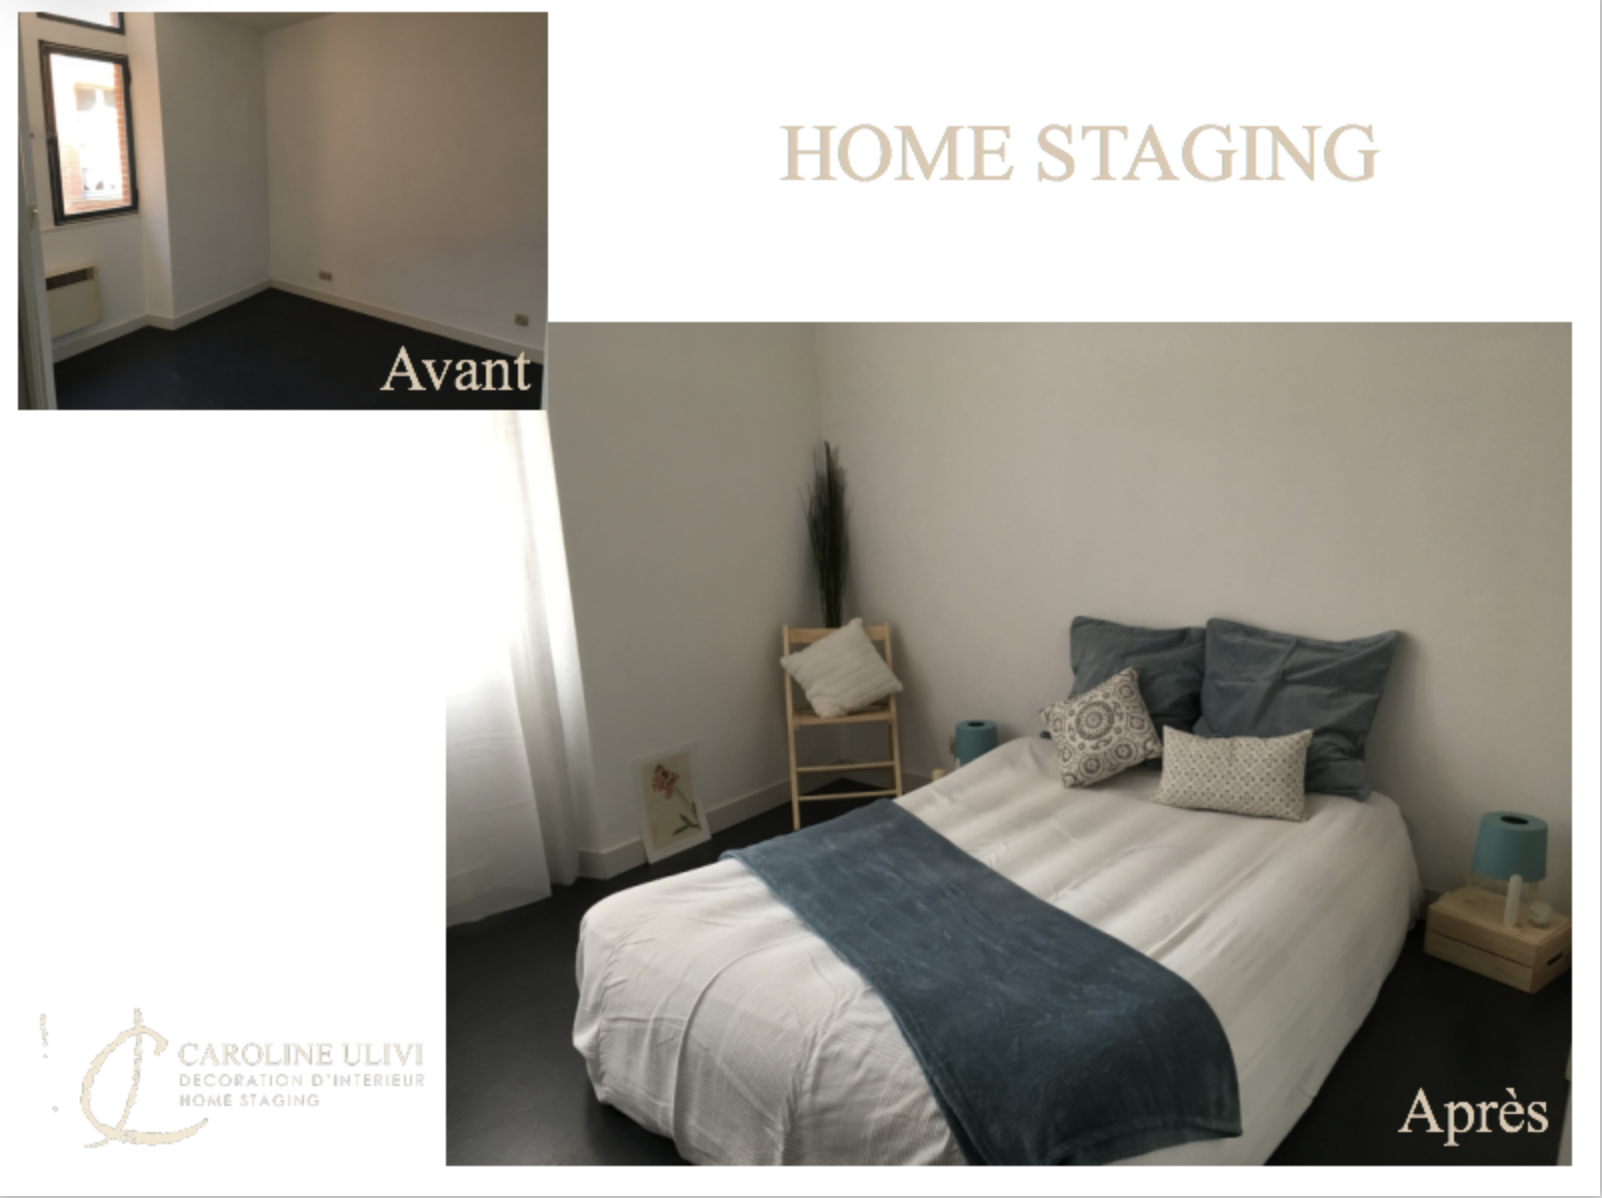 Appartement 55m2 - Montauban Home staging